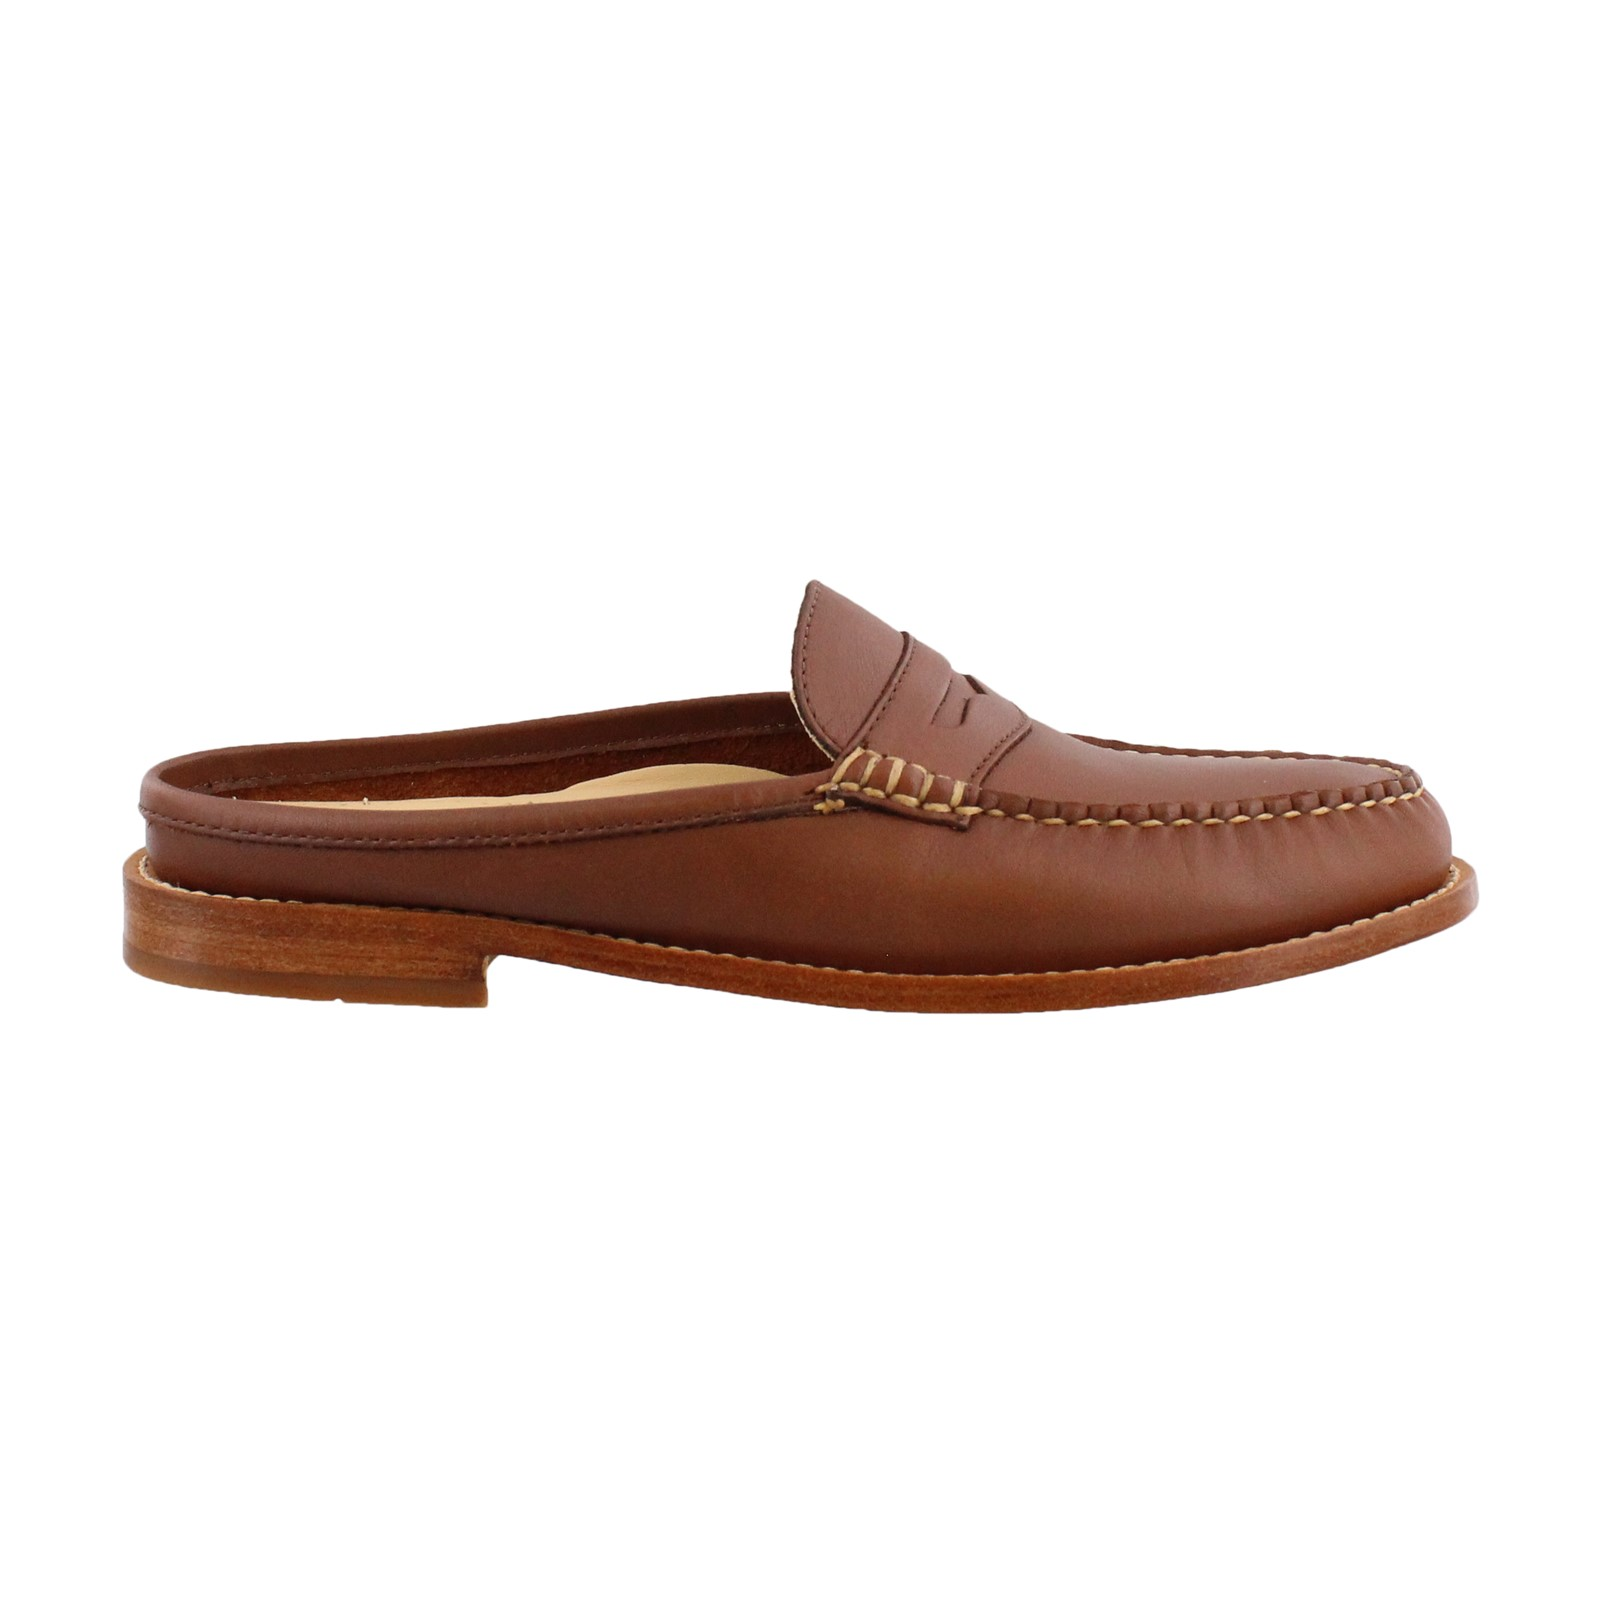 Women's GH Bass and Co, Weejuns Wynn Mule